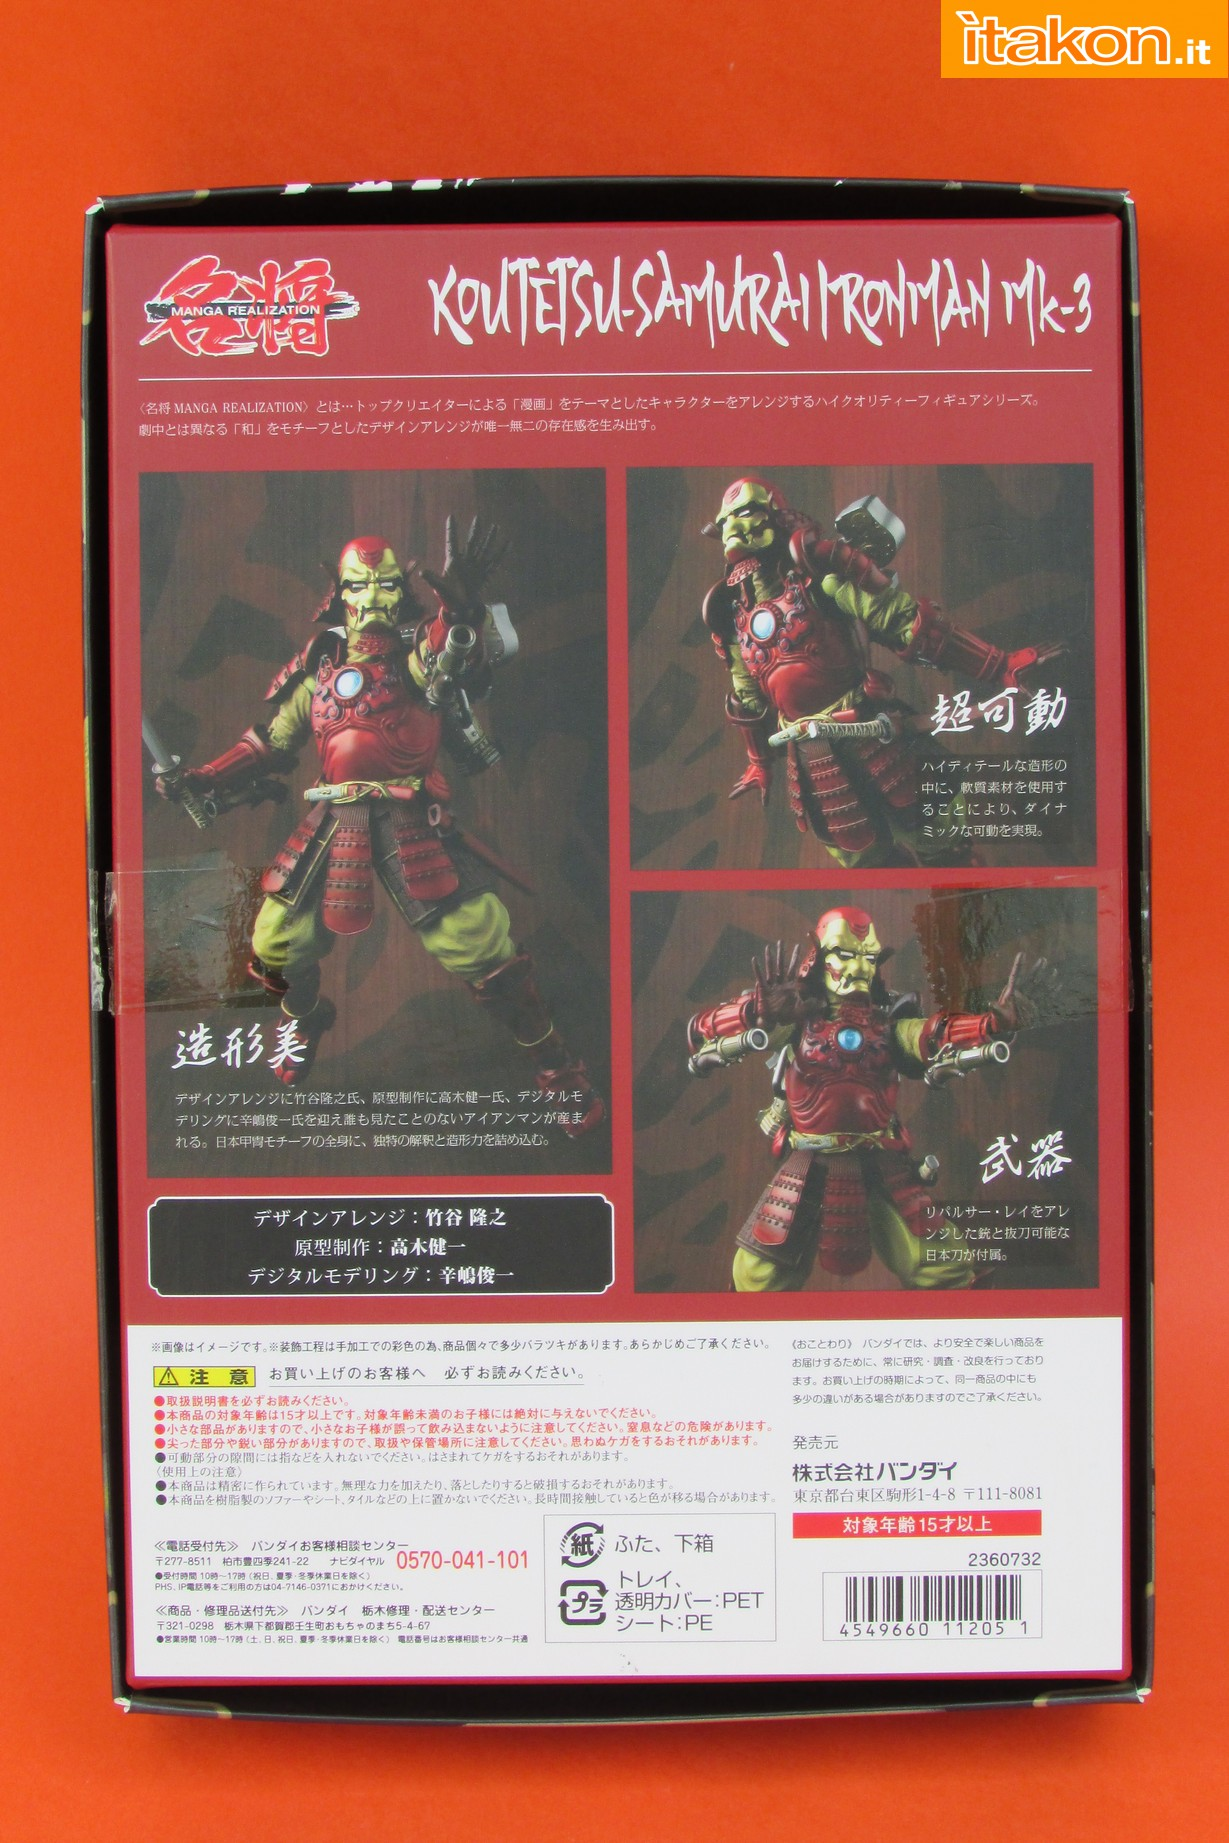 Link a Marvel Comics Koutetsu Samurai Iron Man Mark 3 Meishou MANGA REALIZATION review Bandai Itakon.it02